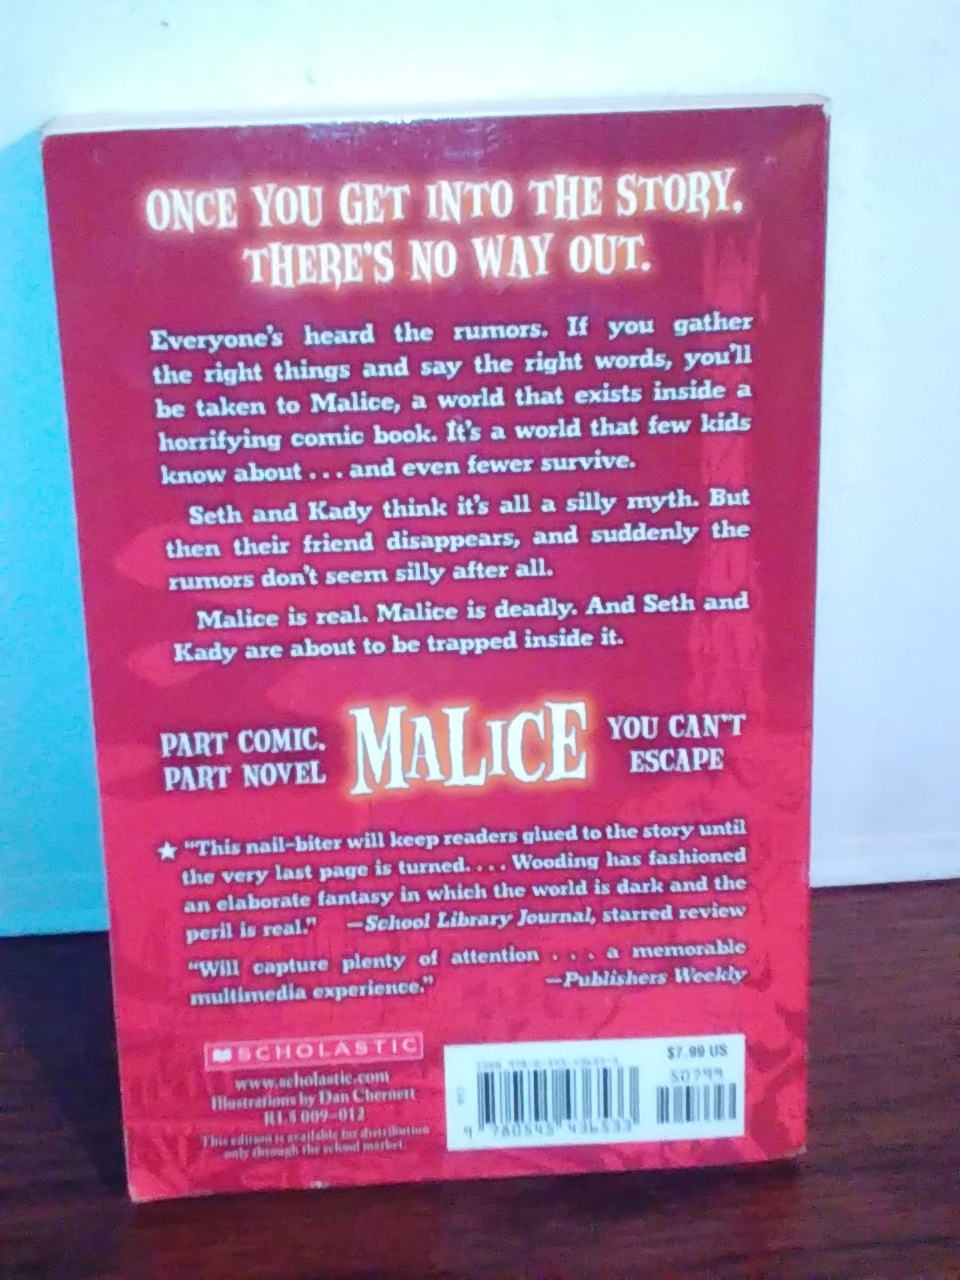 Malice by Chris wooding a Scholastic book